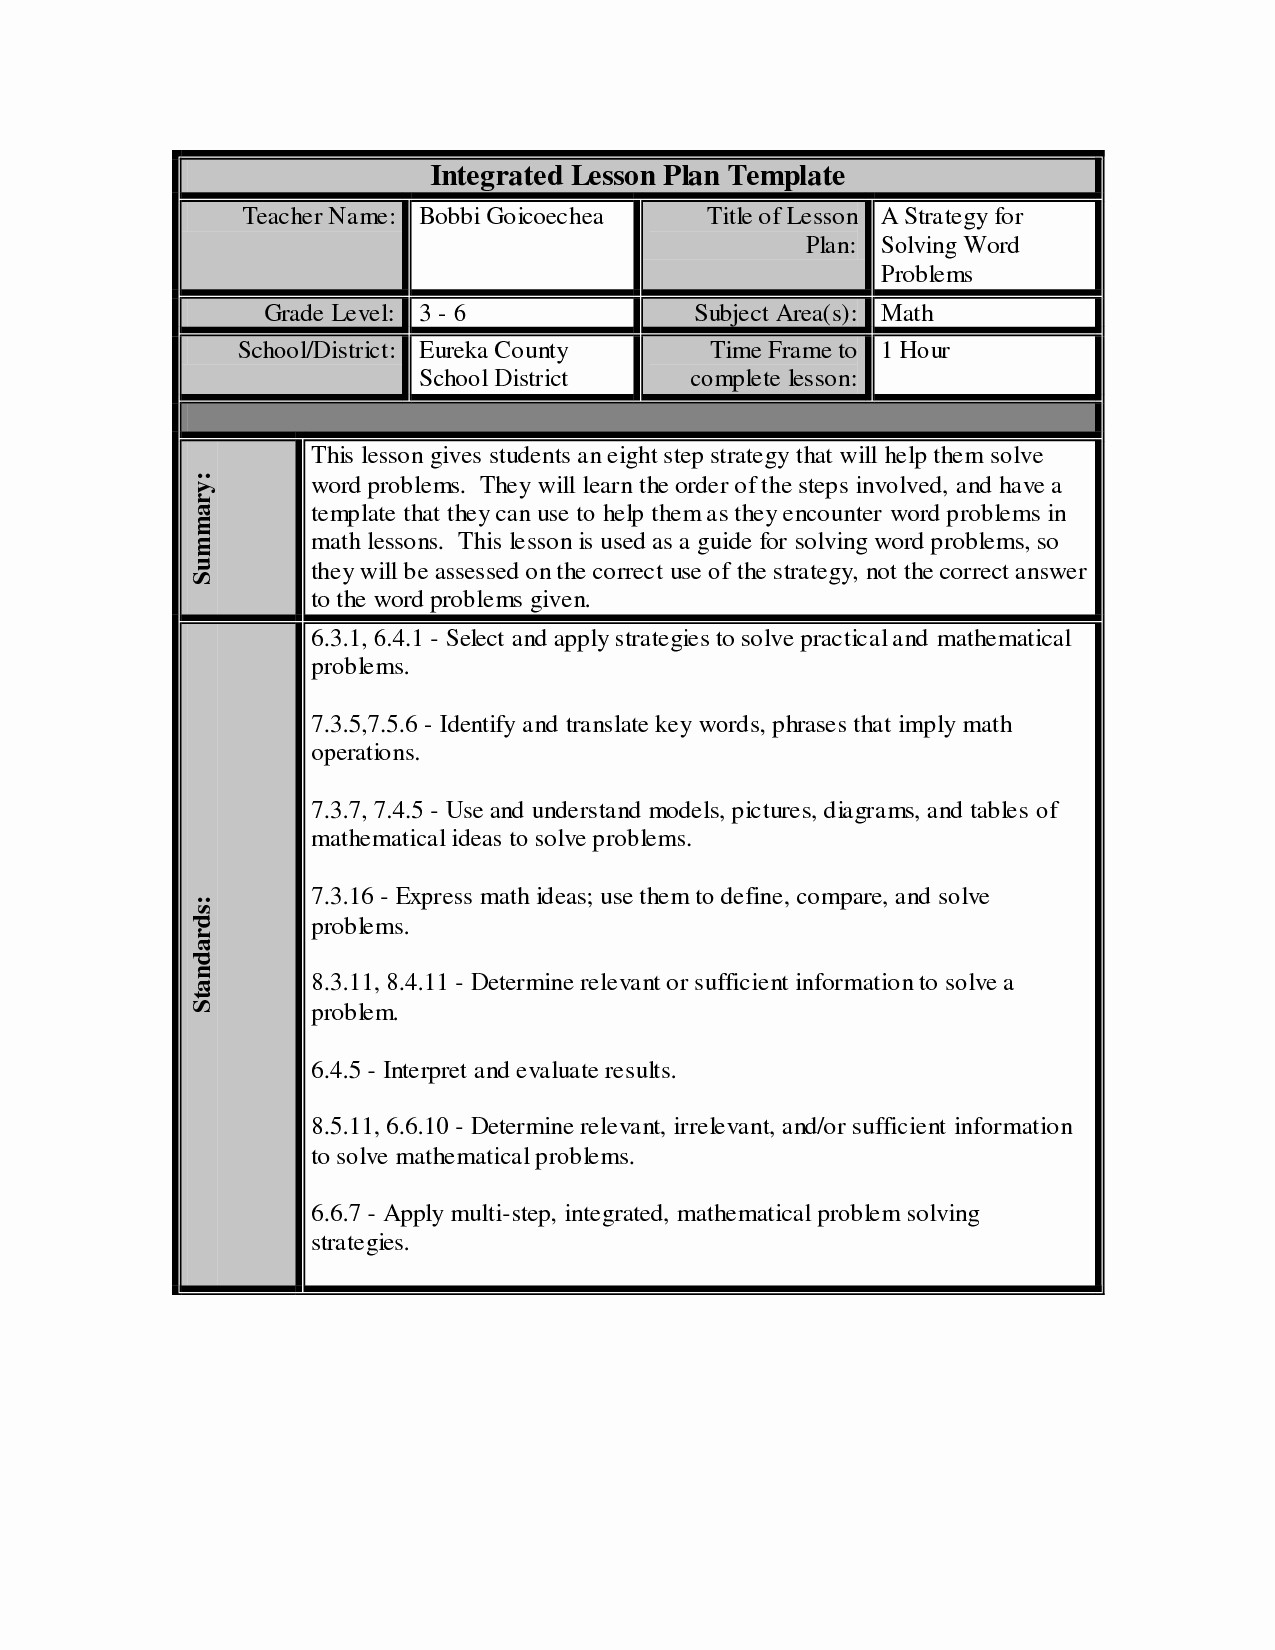 Lesson Plan Template Word Document Best Of Lesson Plan Template Word